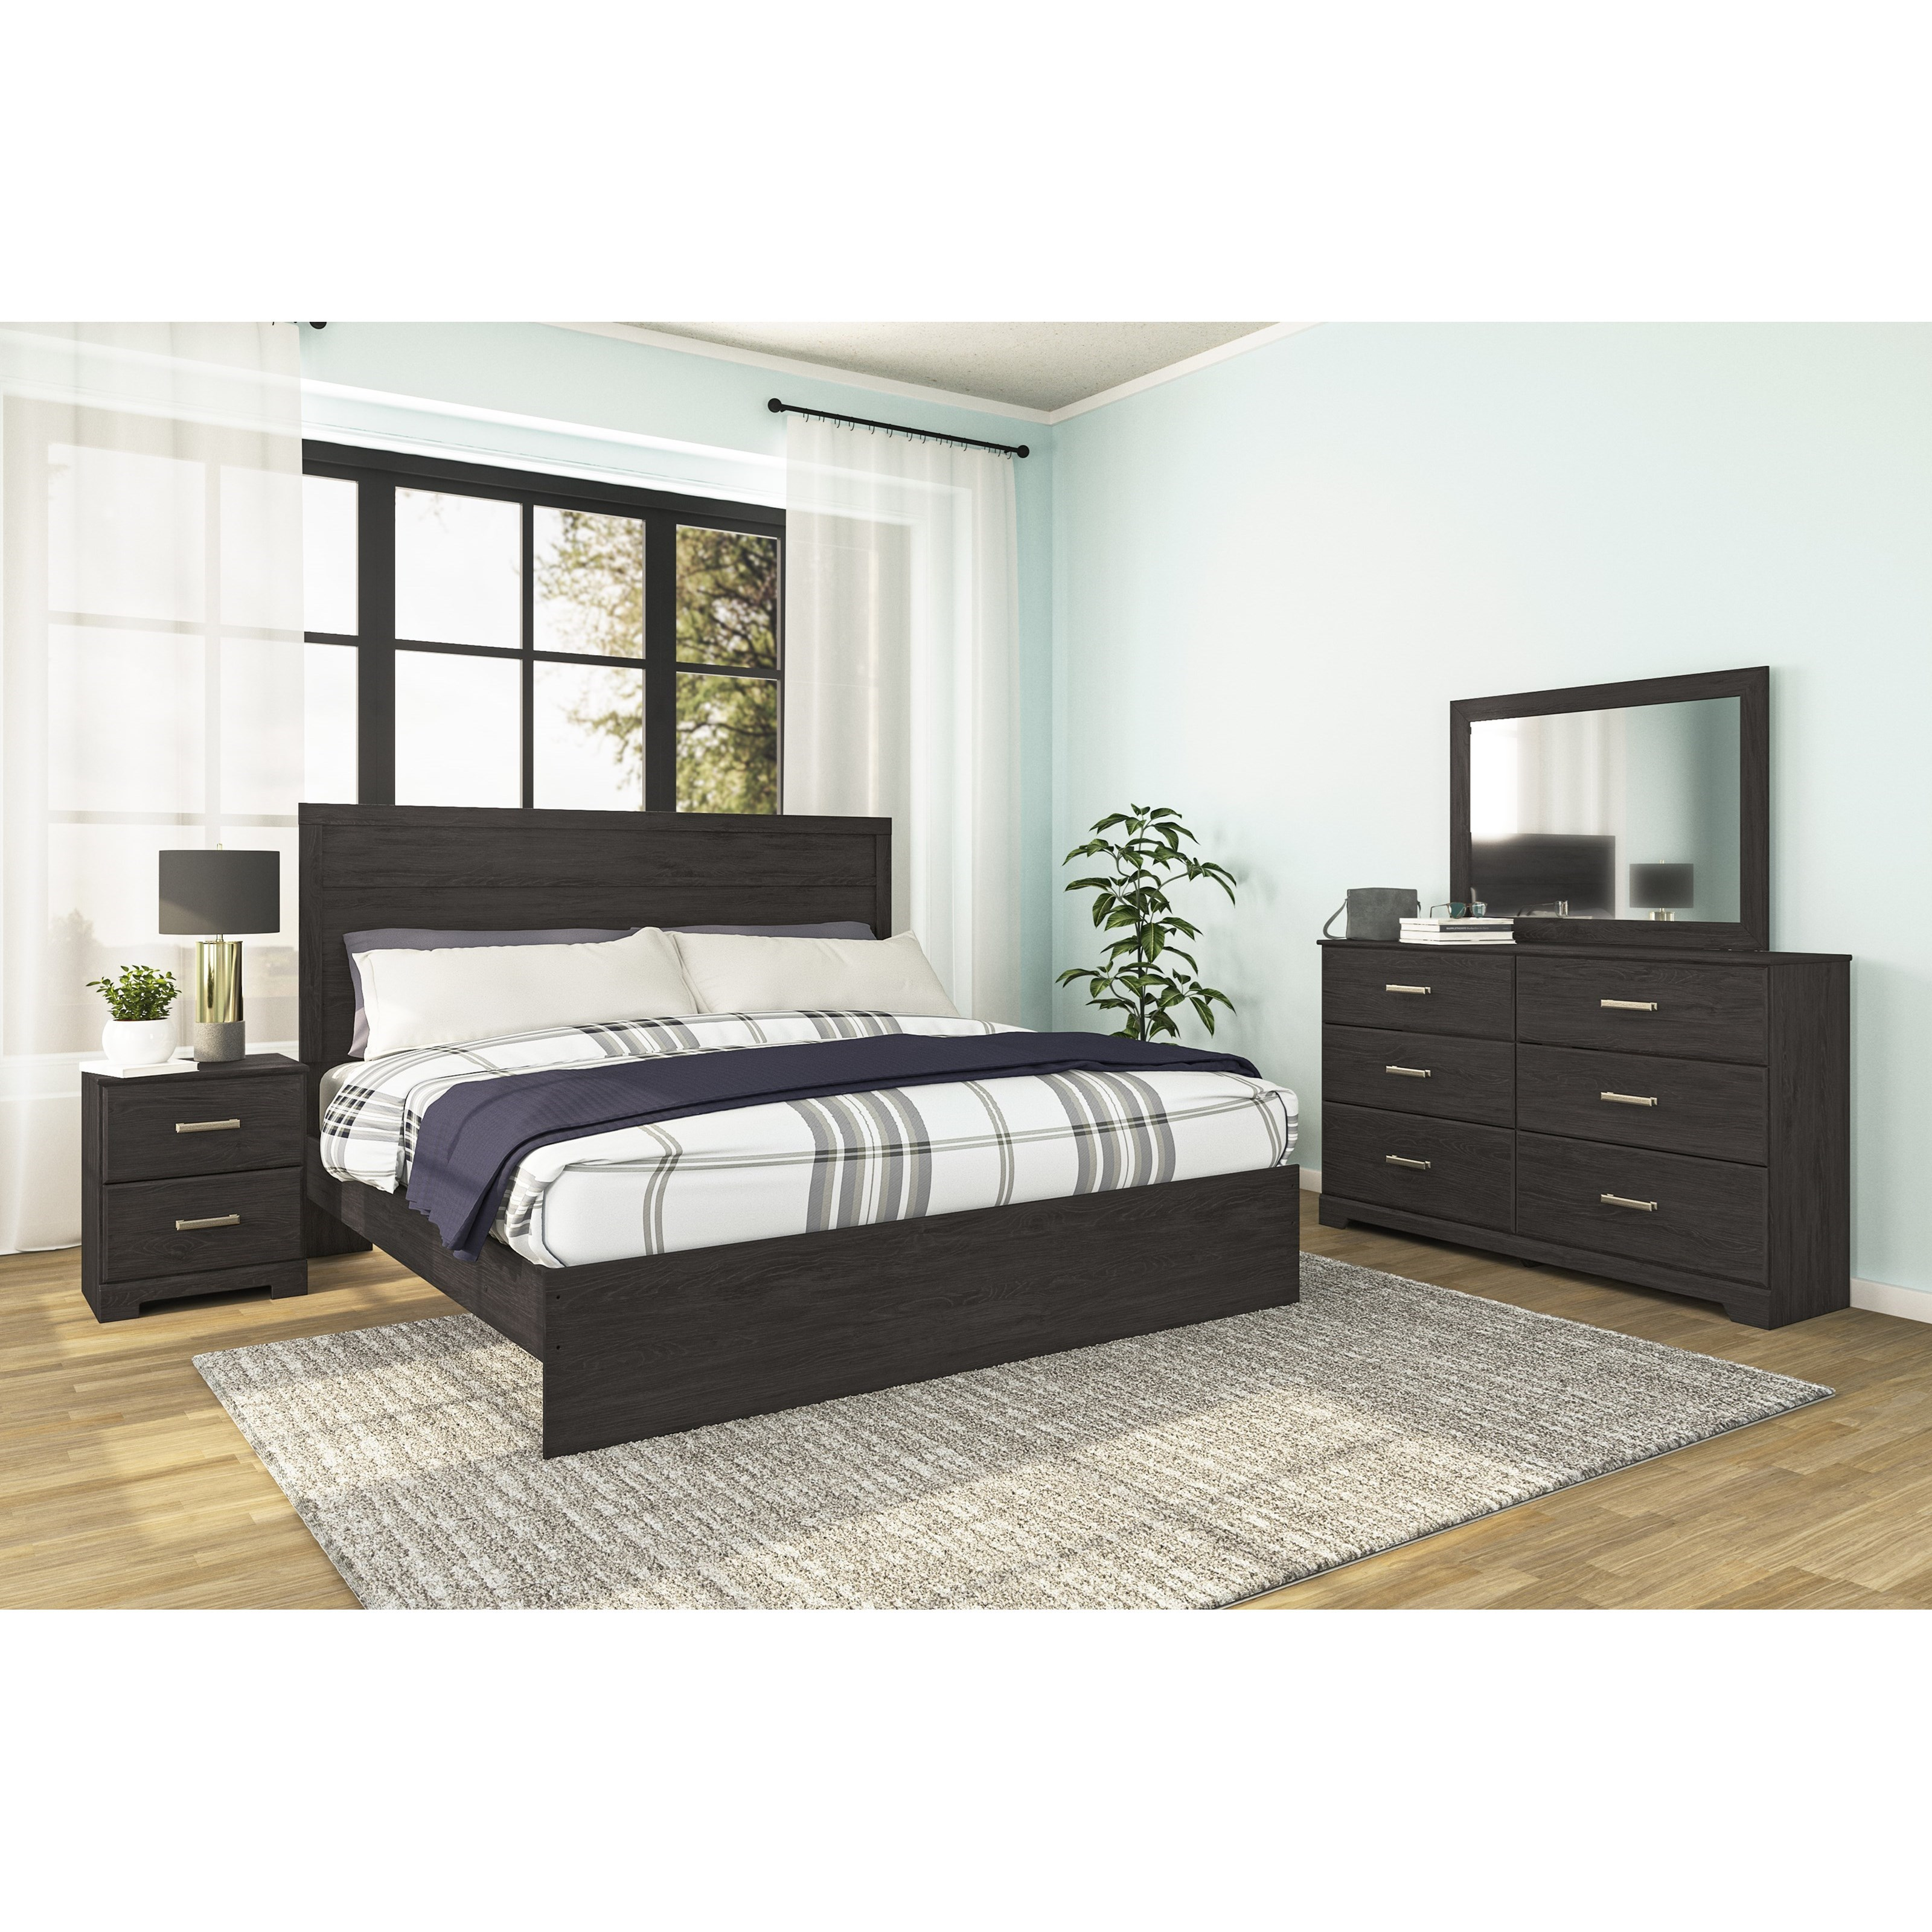 Belachime King Bedroom Group by Signature Design by Ashley at Household Furniture